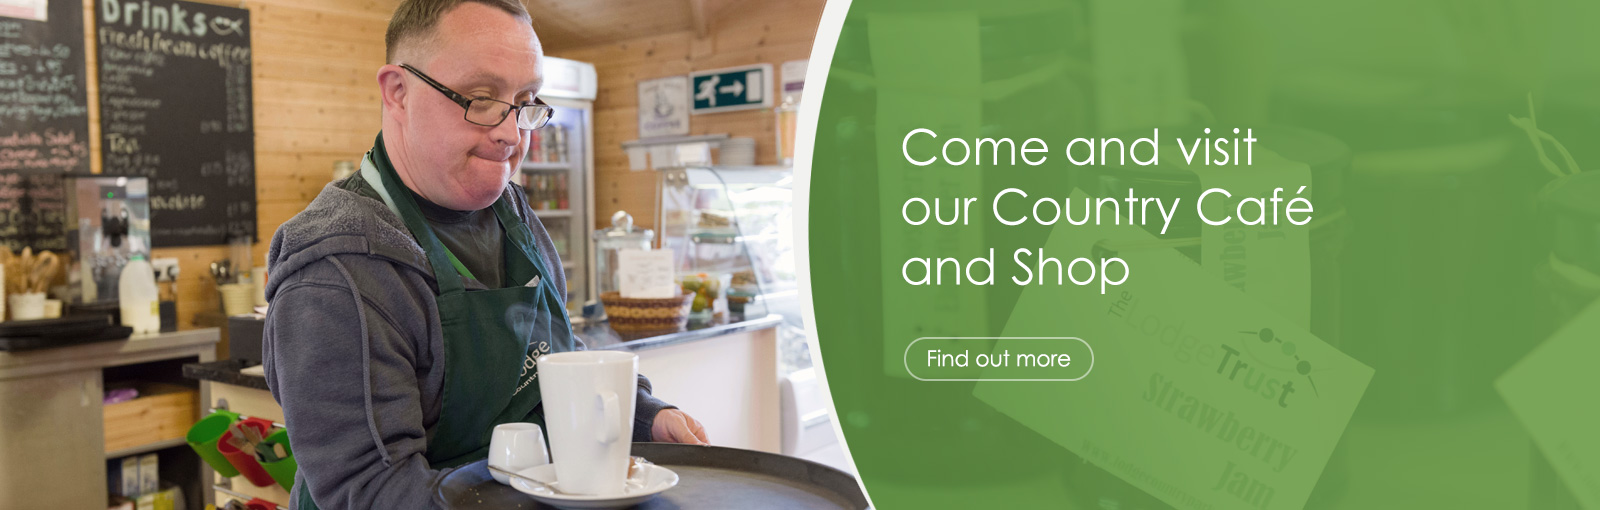 Come and visit our Country Café and Shop